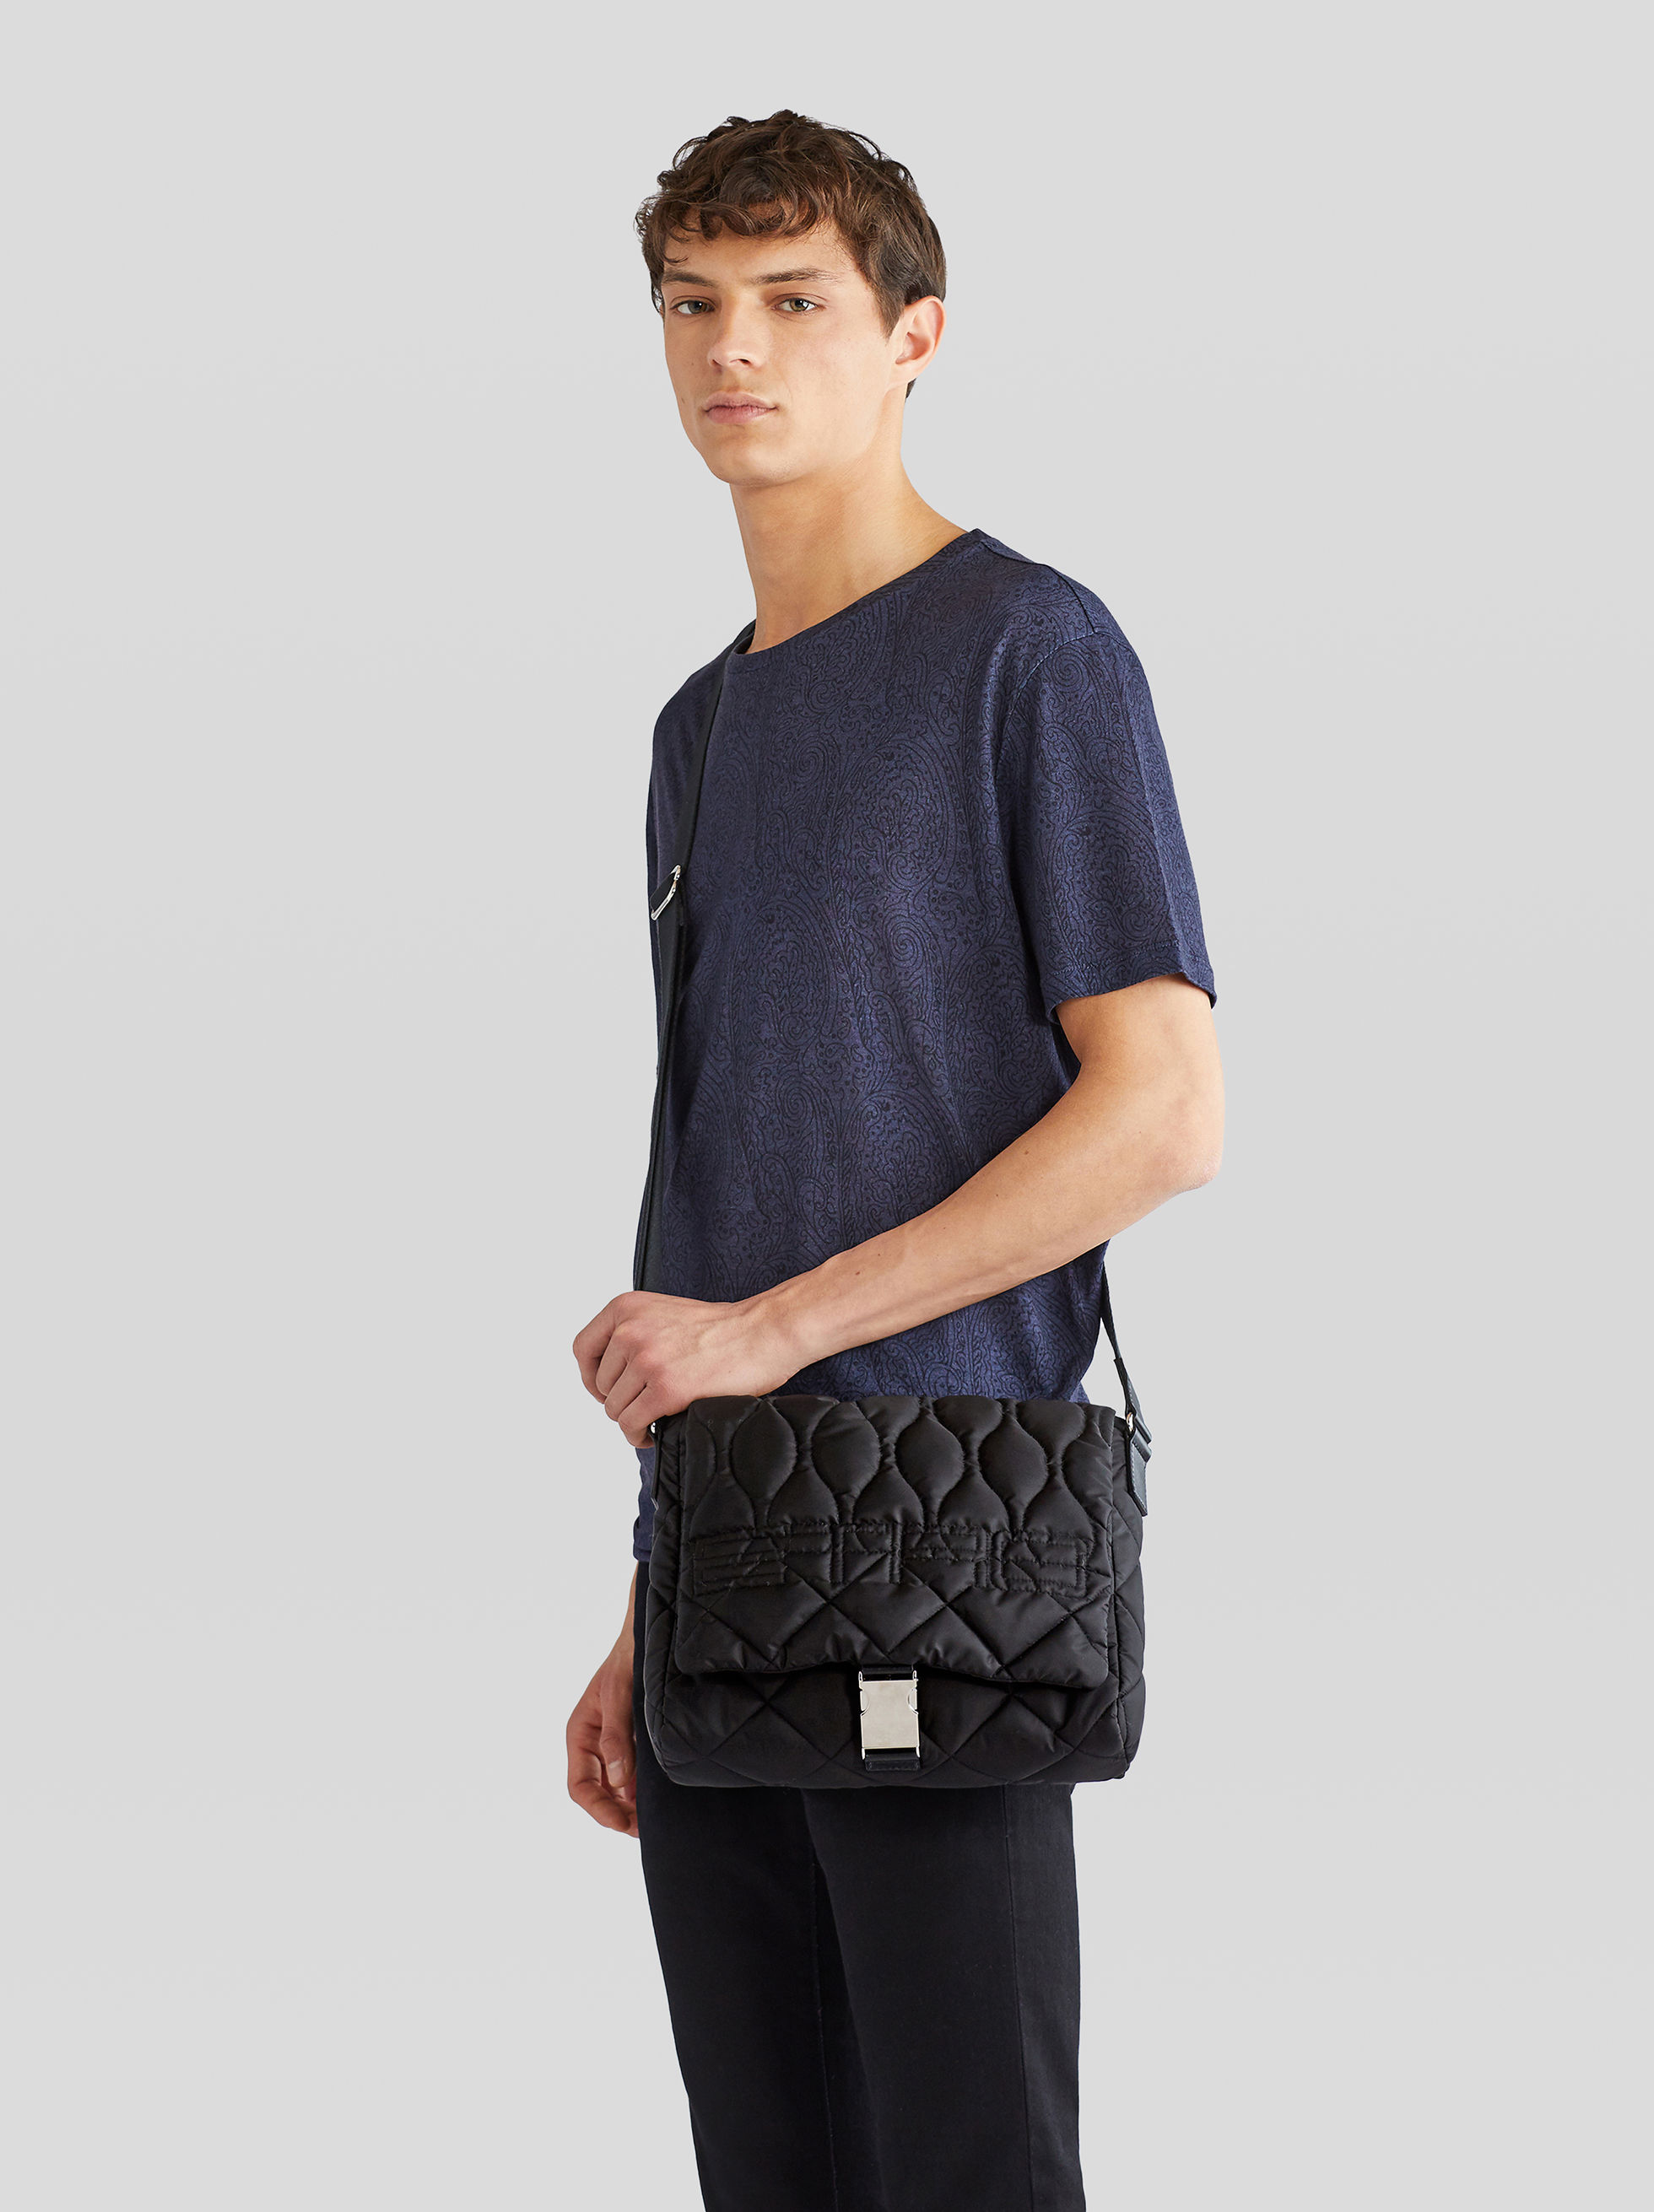 MATELASSÉ NYLON MESSENGER BAG WITH LOGO